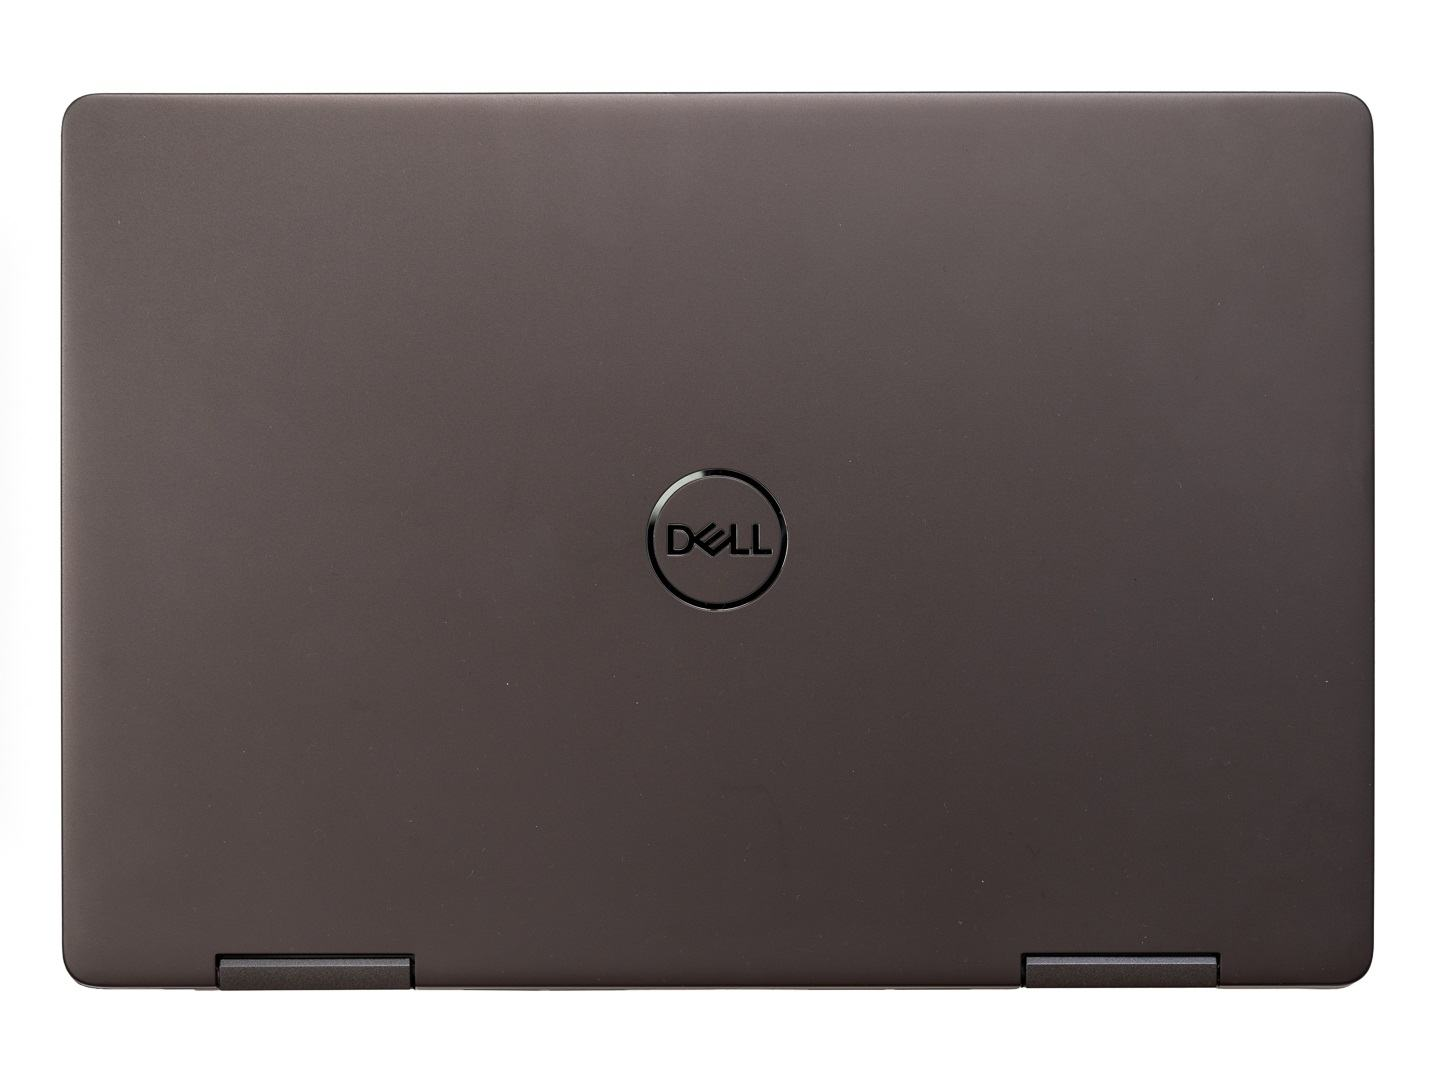 Dell Inspiron 13 7386 2 in 1